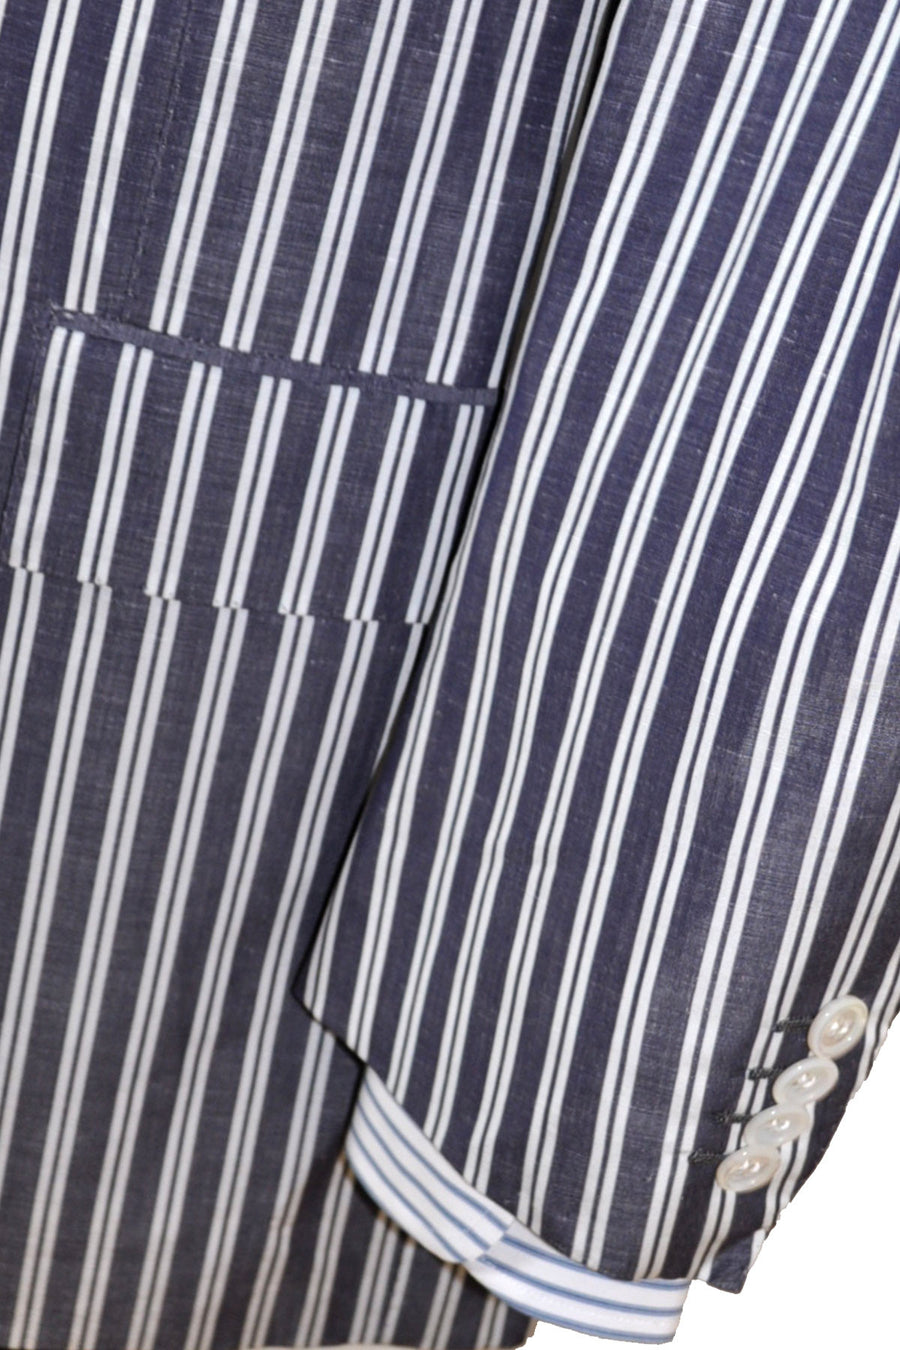 Kiton Sportcoat Navy White Stripes Cotton Linen